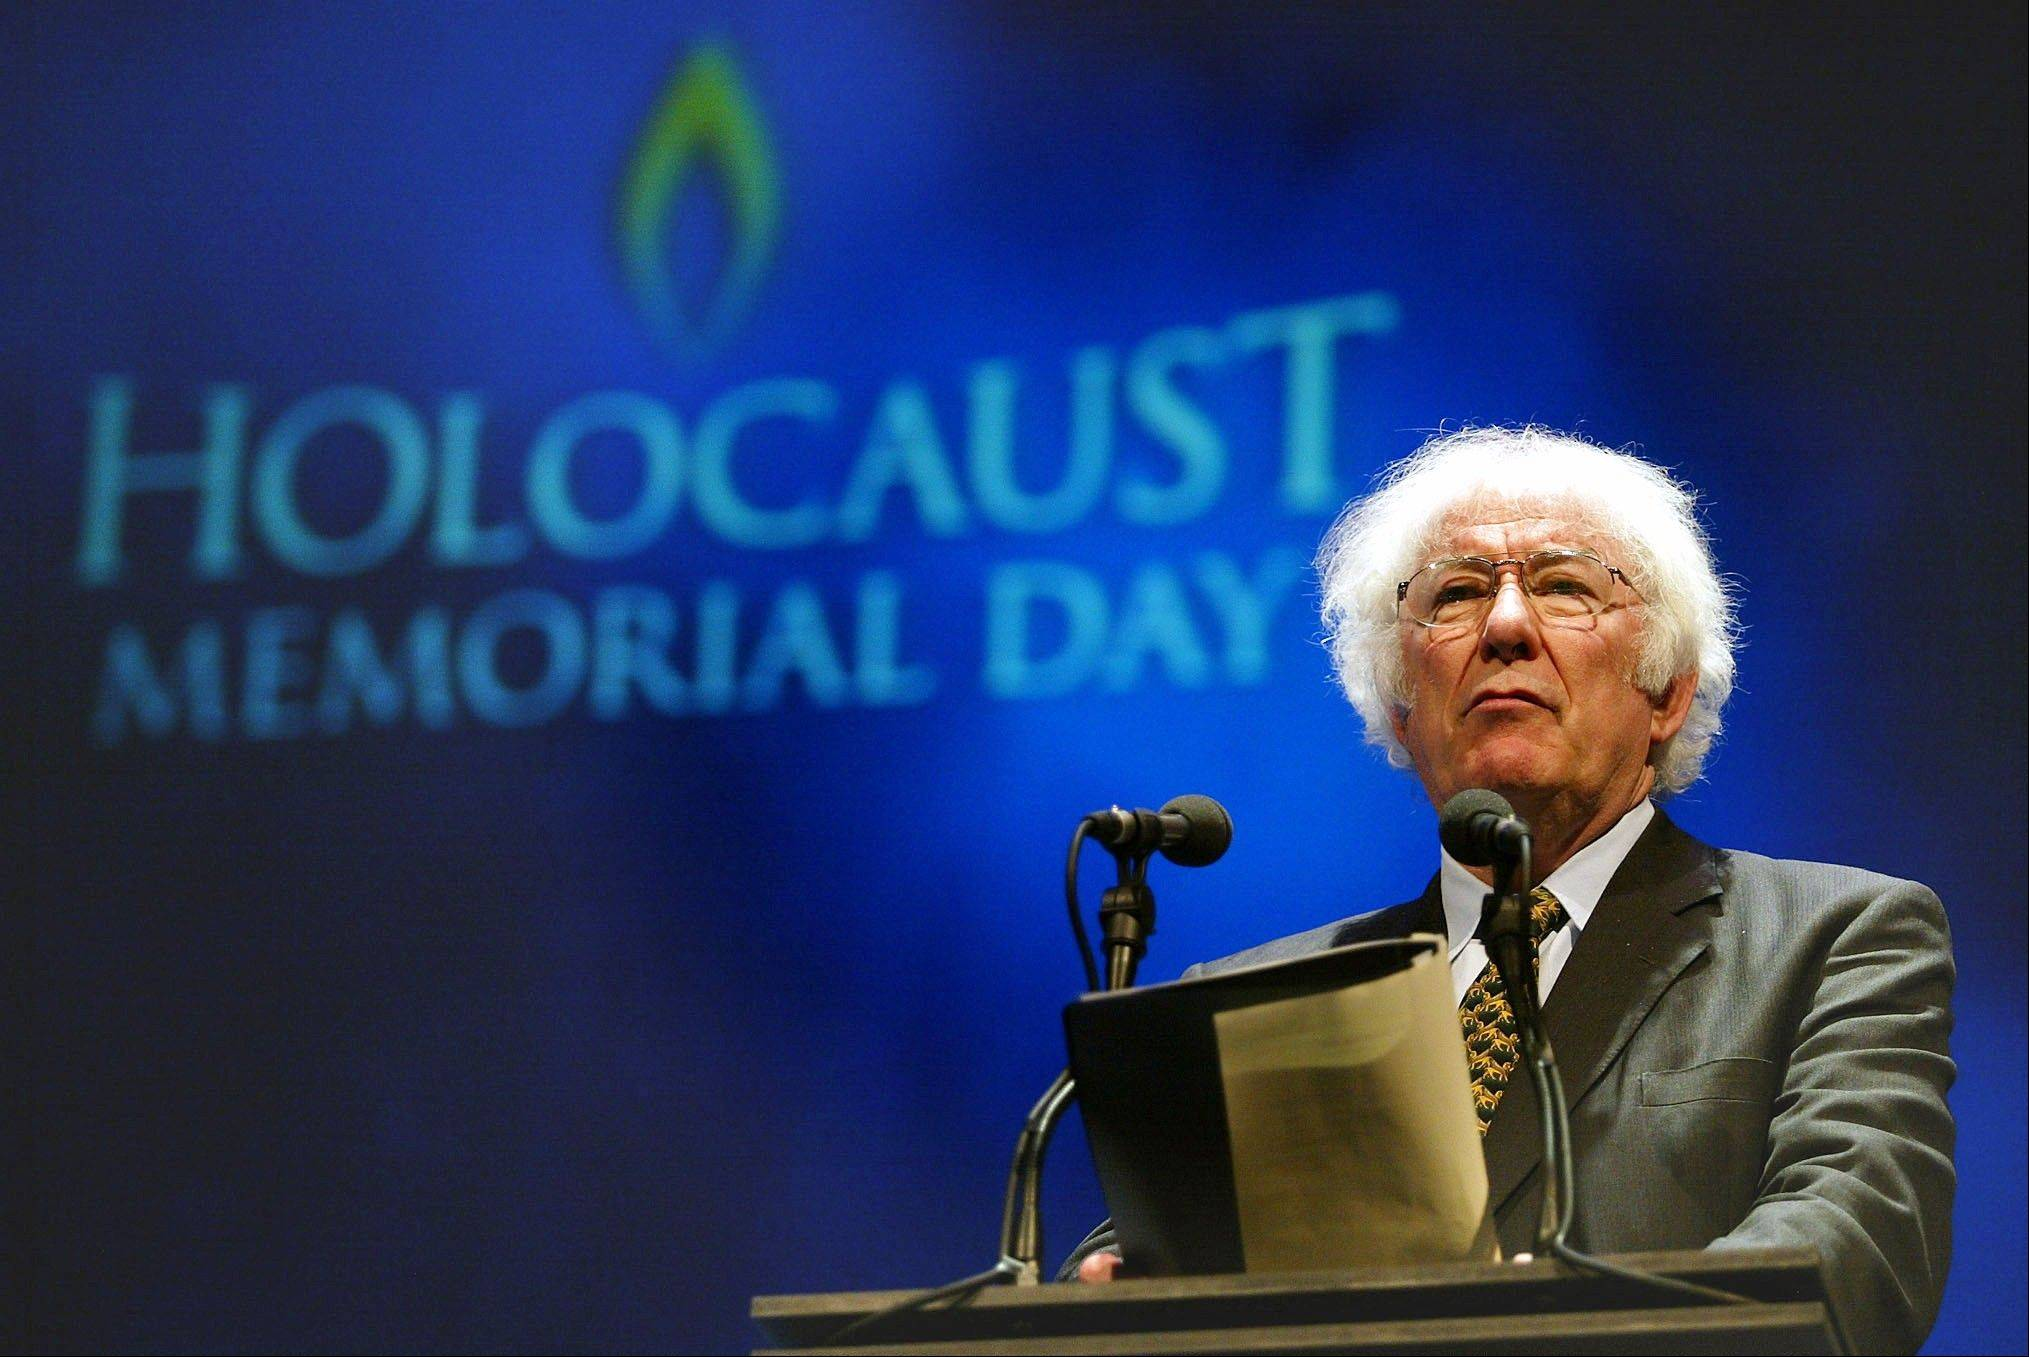 A Tuesday, Jan. 27, 2004 photo from files showing former Nobel Prize winning poet Seamus Heaney speaking during a rehearsal for the Northern Irish national Holocaust commemoration at the Waterfront Hall, Belfast, Northern Ireland. Seamus Heaney, Irelandís foremost poet who won the Nobel literature prize in 1995, has died after a half-century exploring the wild beauty of Ireland and the political torment within the nationís soul.